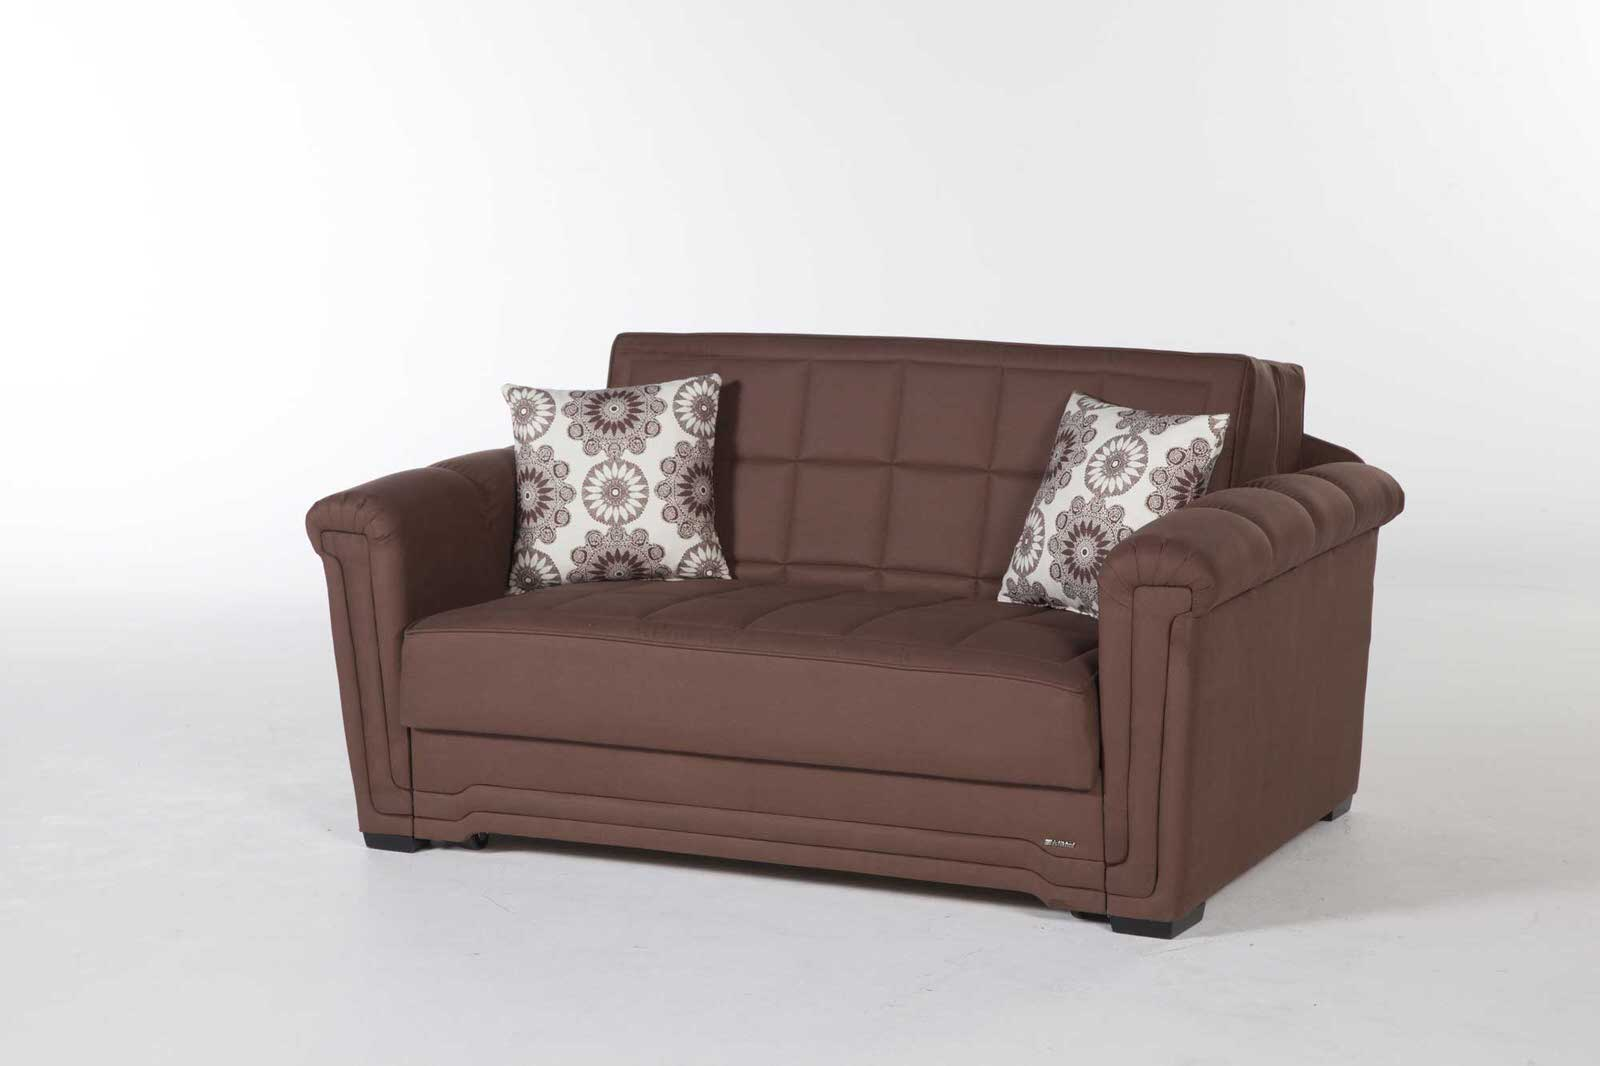 Sleeper Loveseat Ikea | Small Loveseat Sleeper Sofa | Loveseat Sleeper